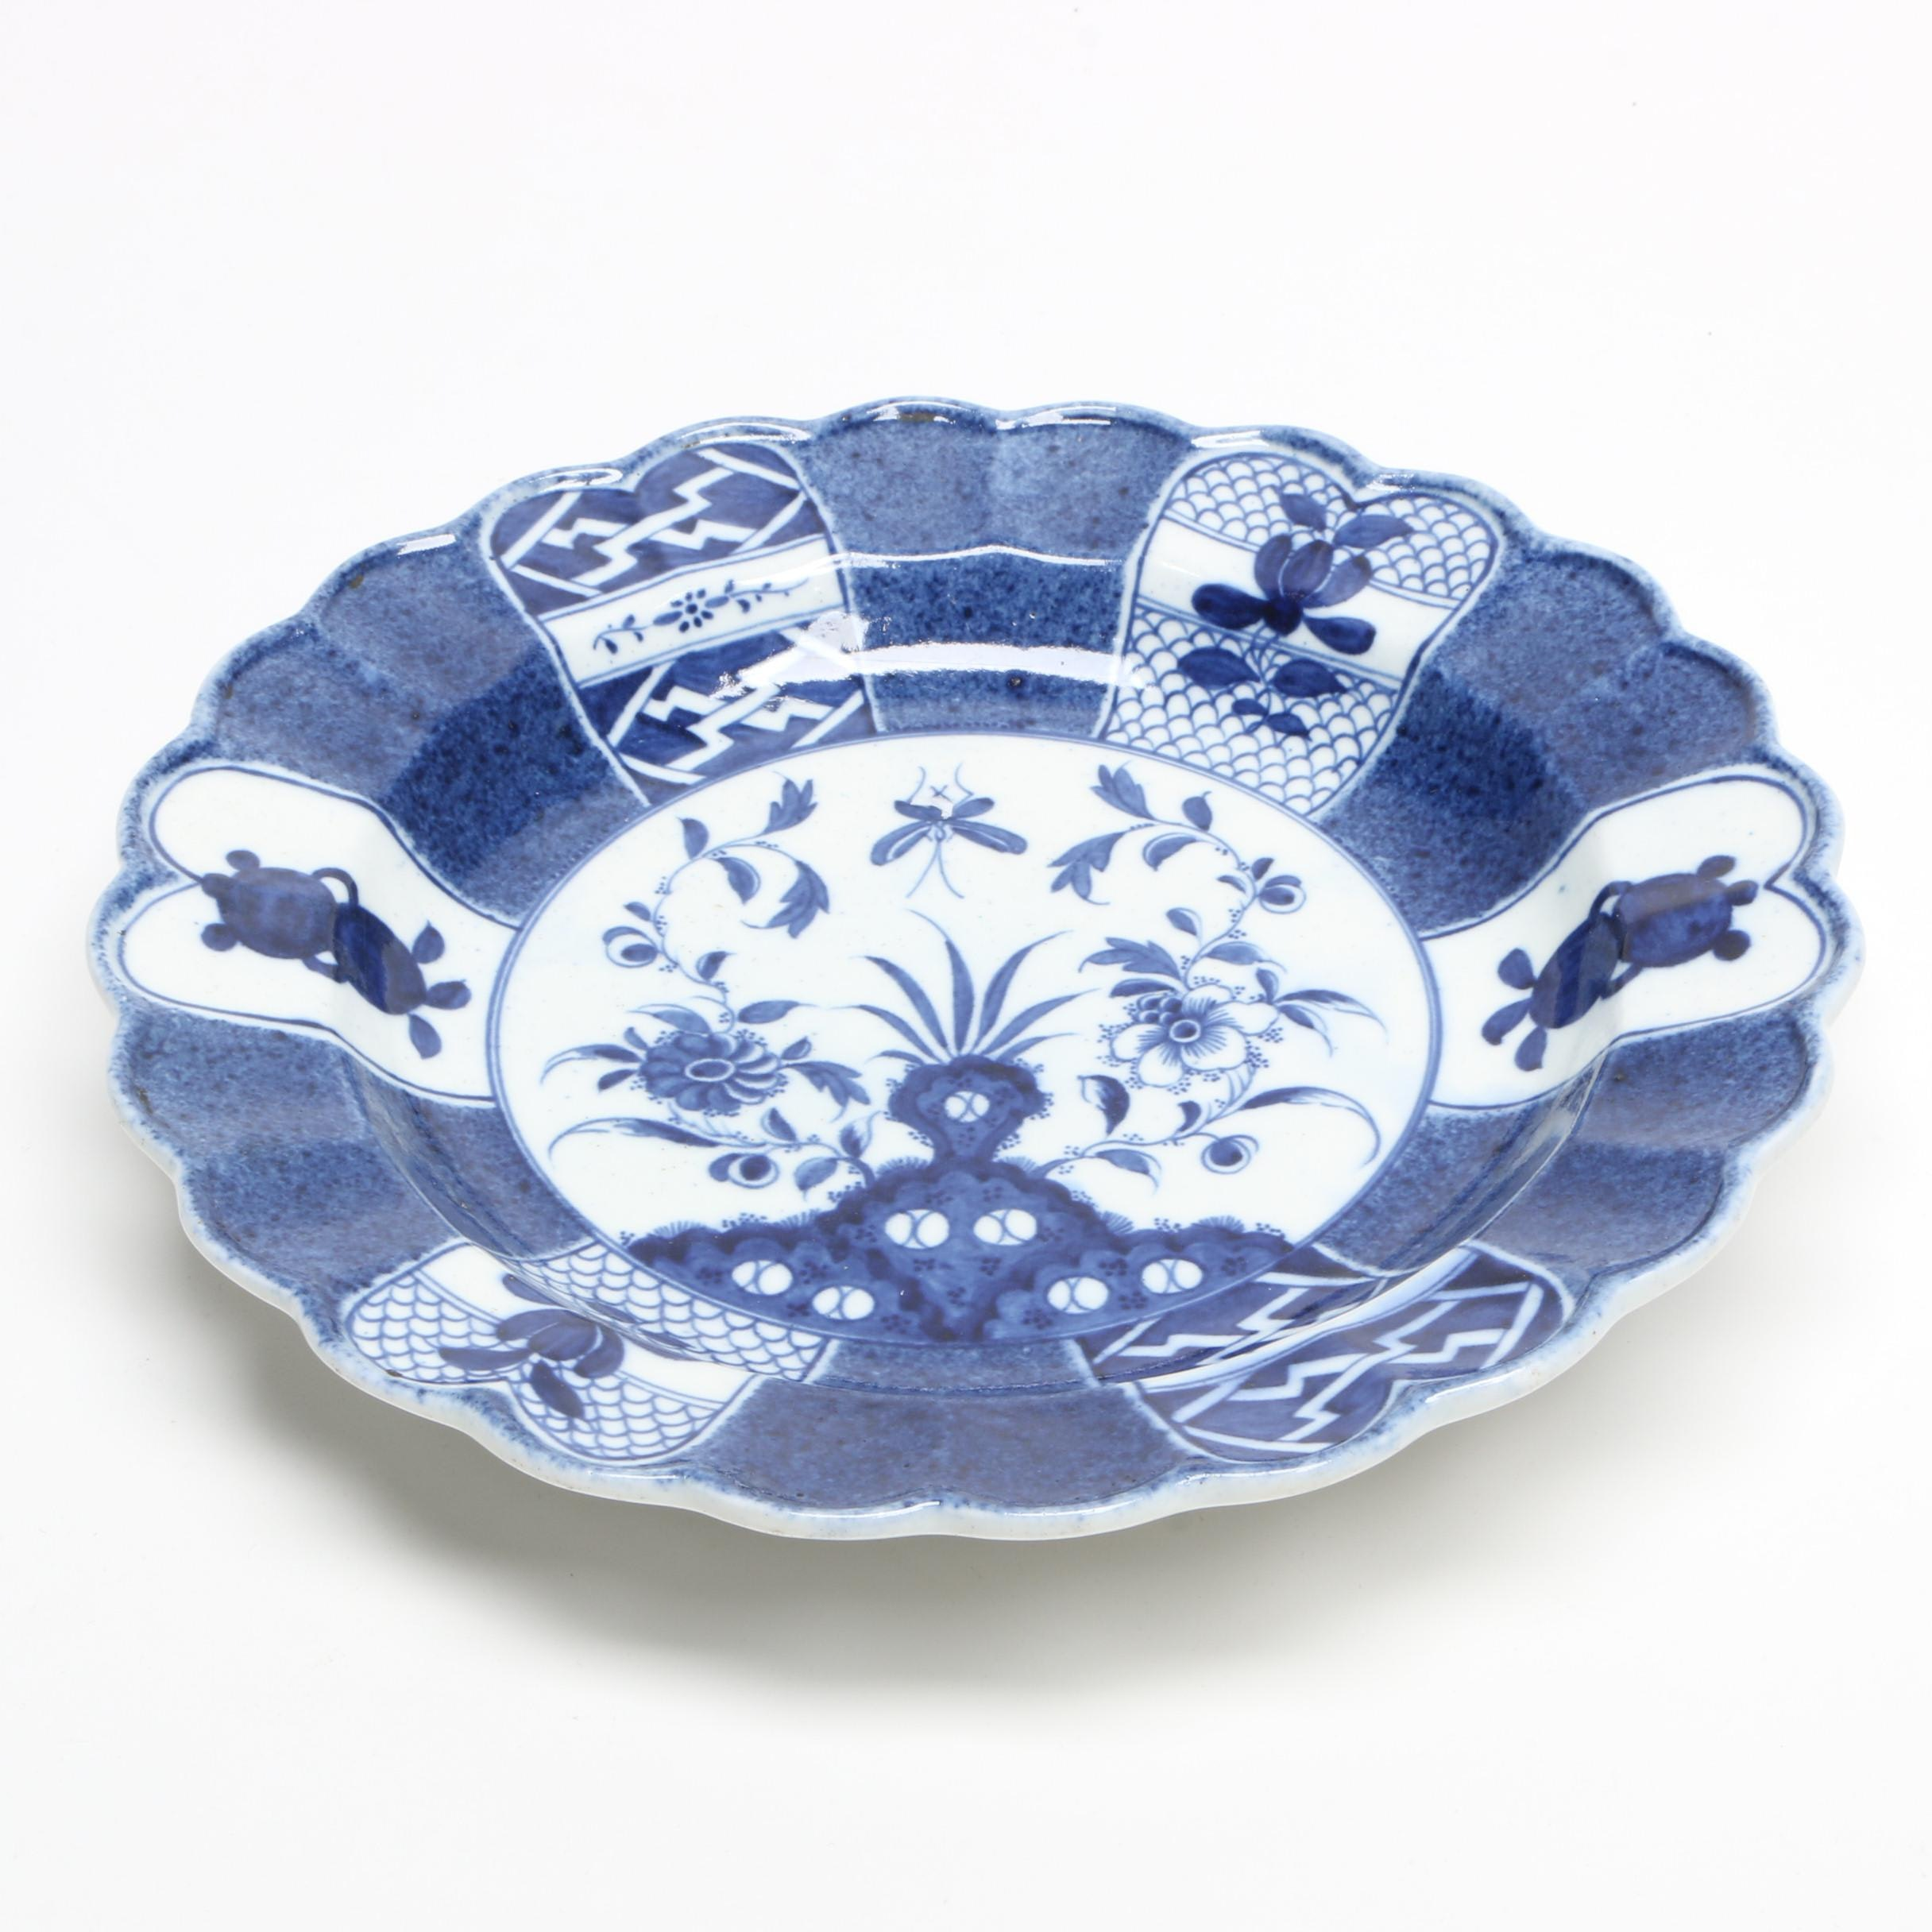 East Asian Blue and White Porcelain Plate